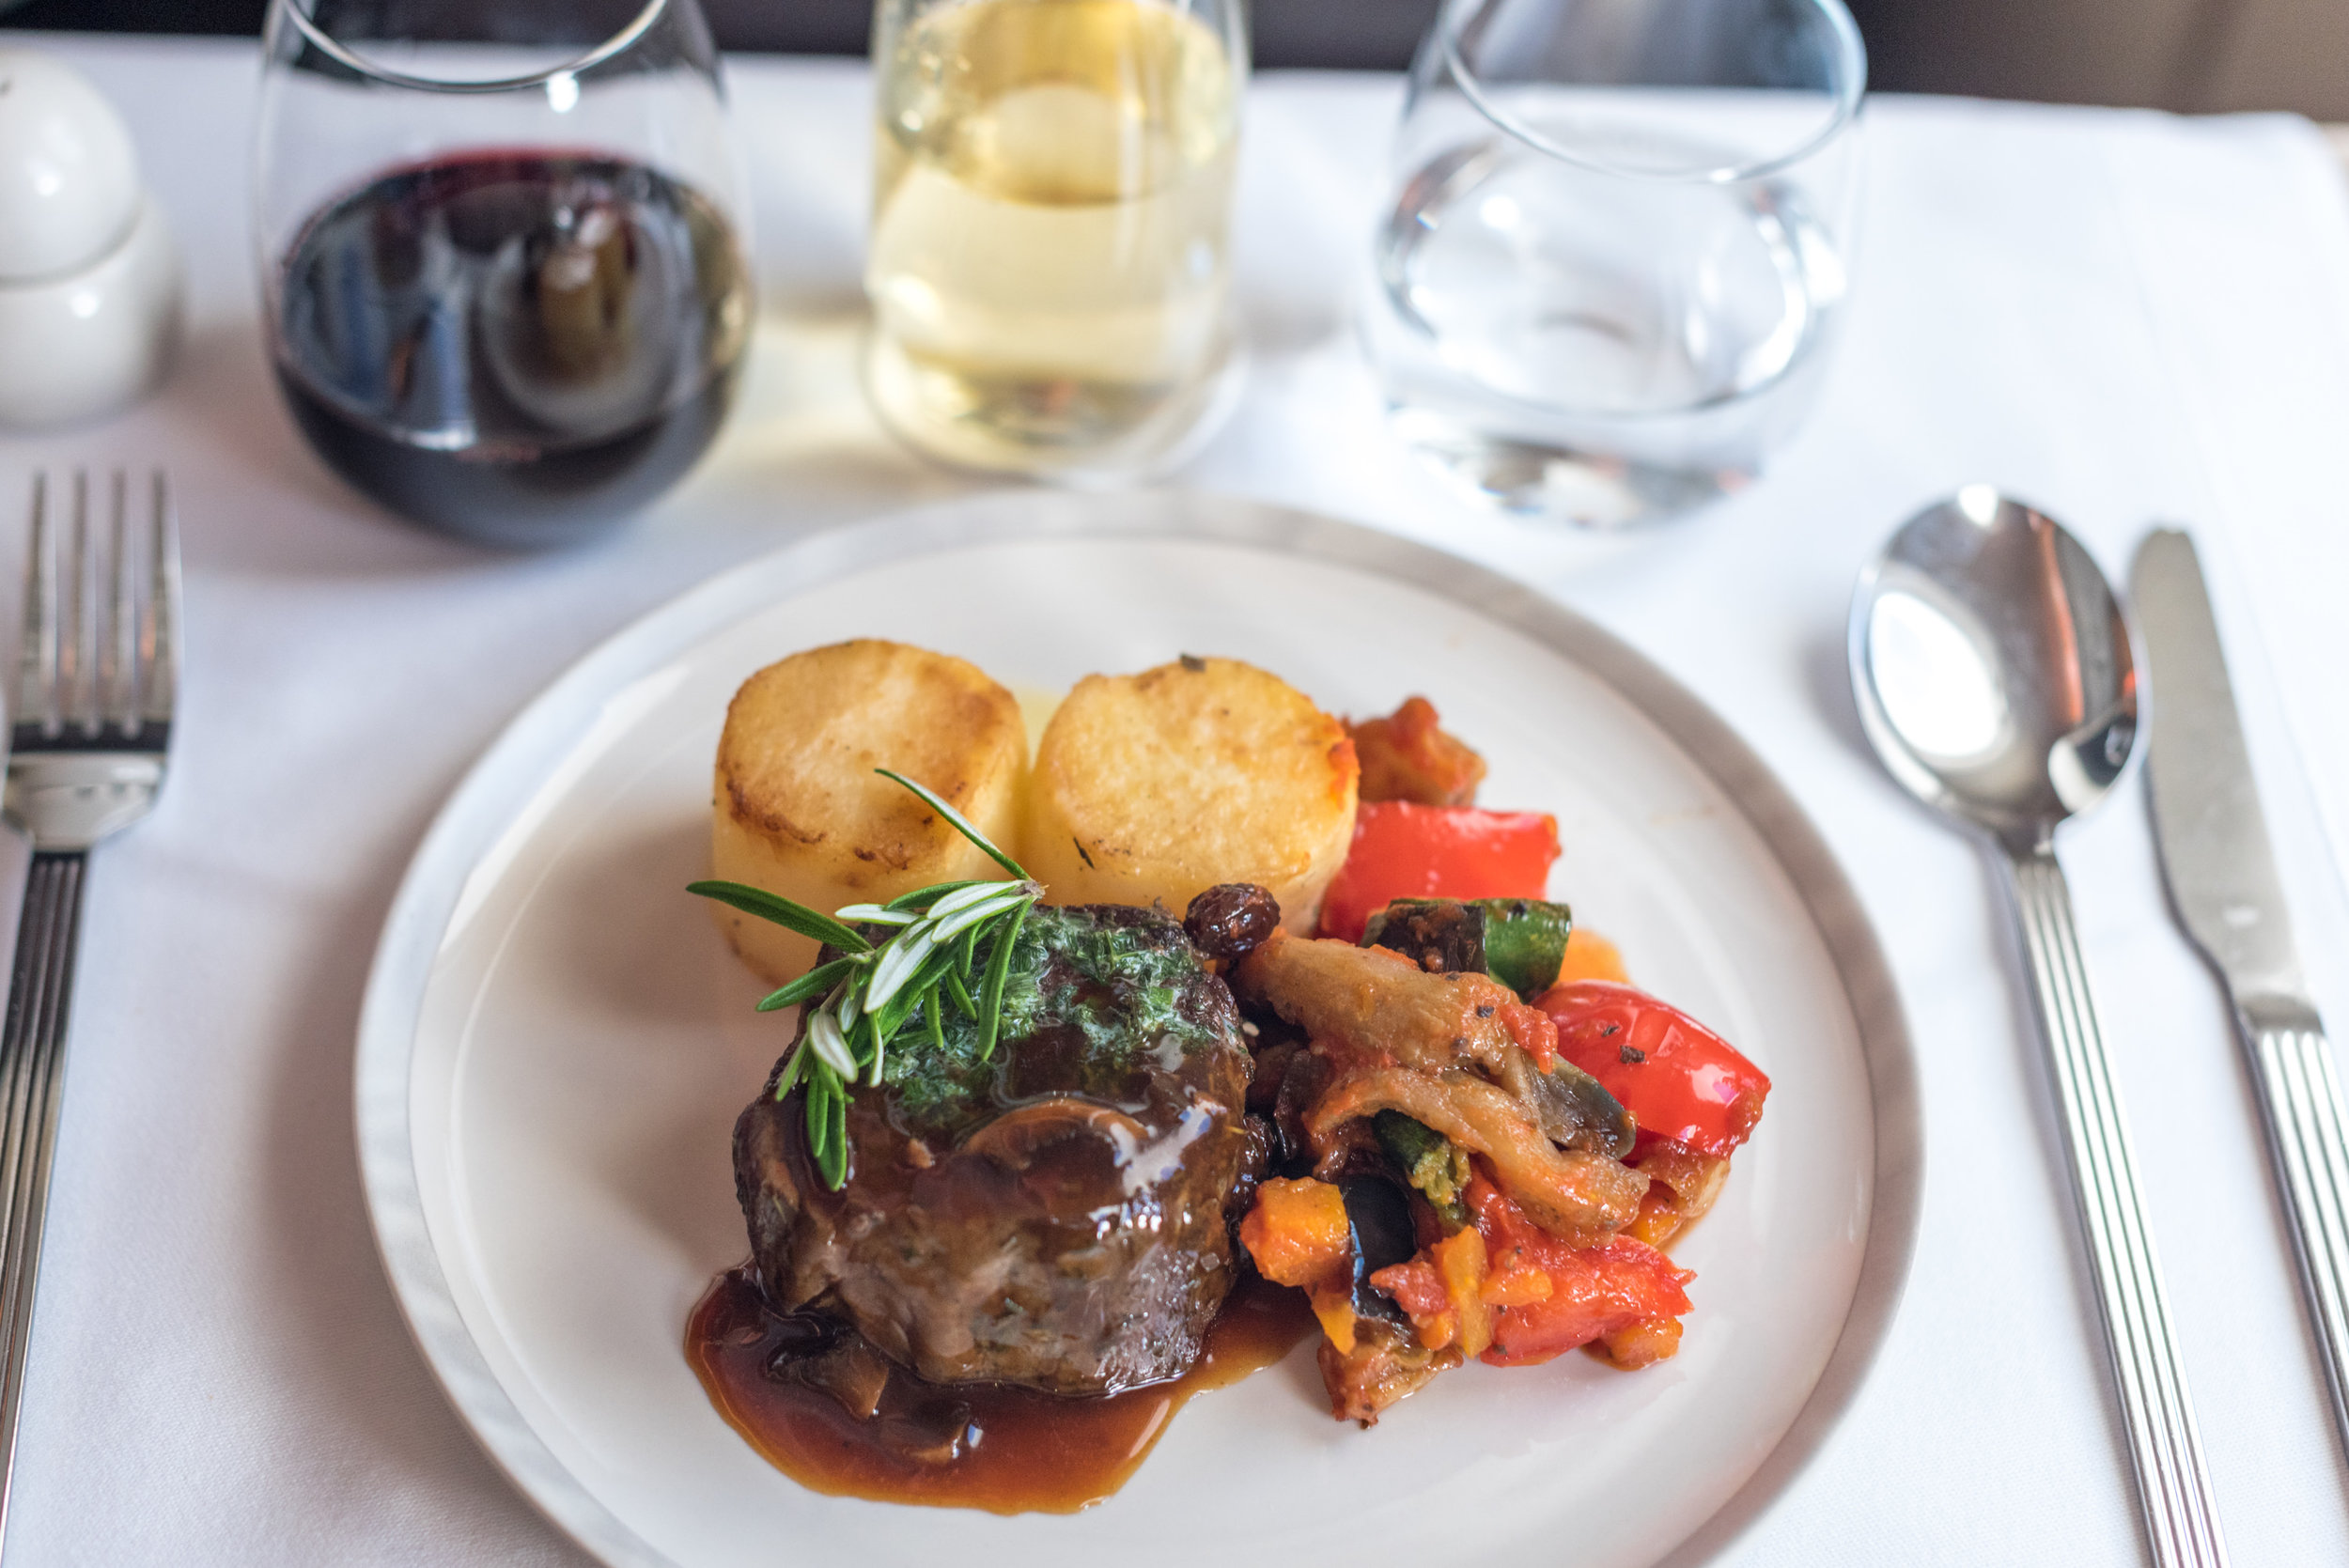 Grilled New Zealand Wakanui Beef Fillet - Lunch Service  Singapore Airlines Business Class SQ286 A380-800 - AKL to SIN